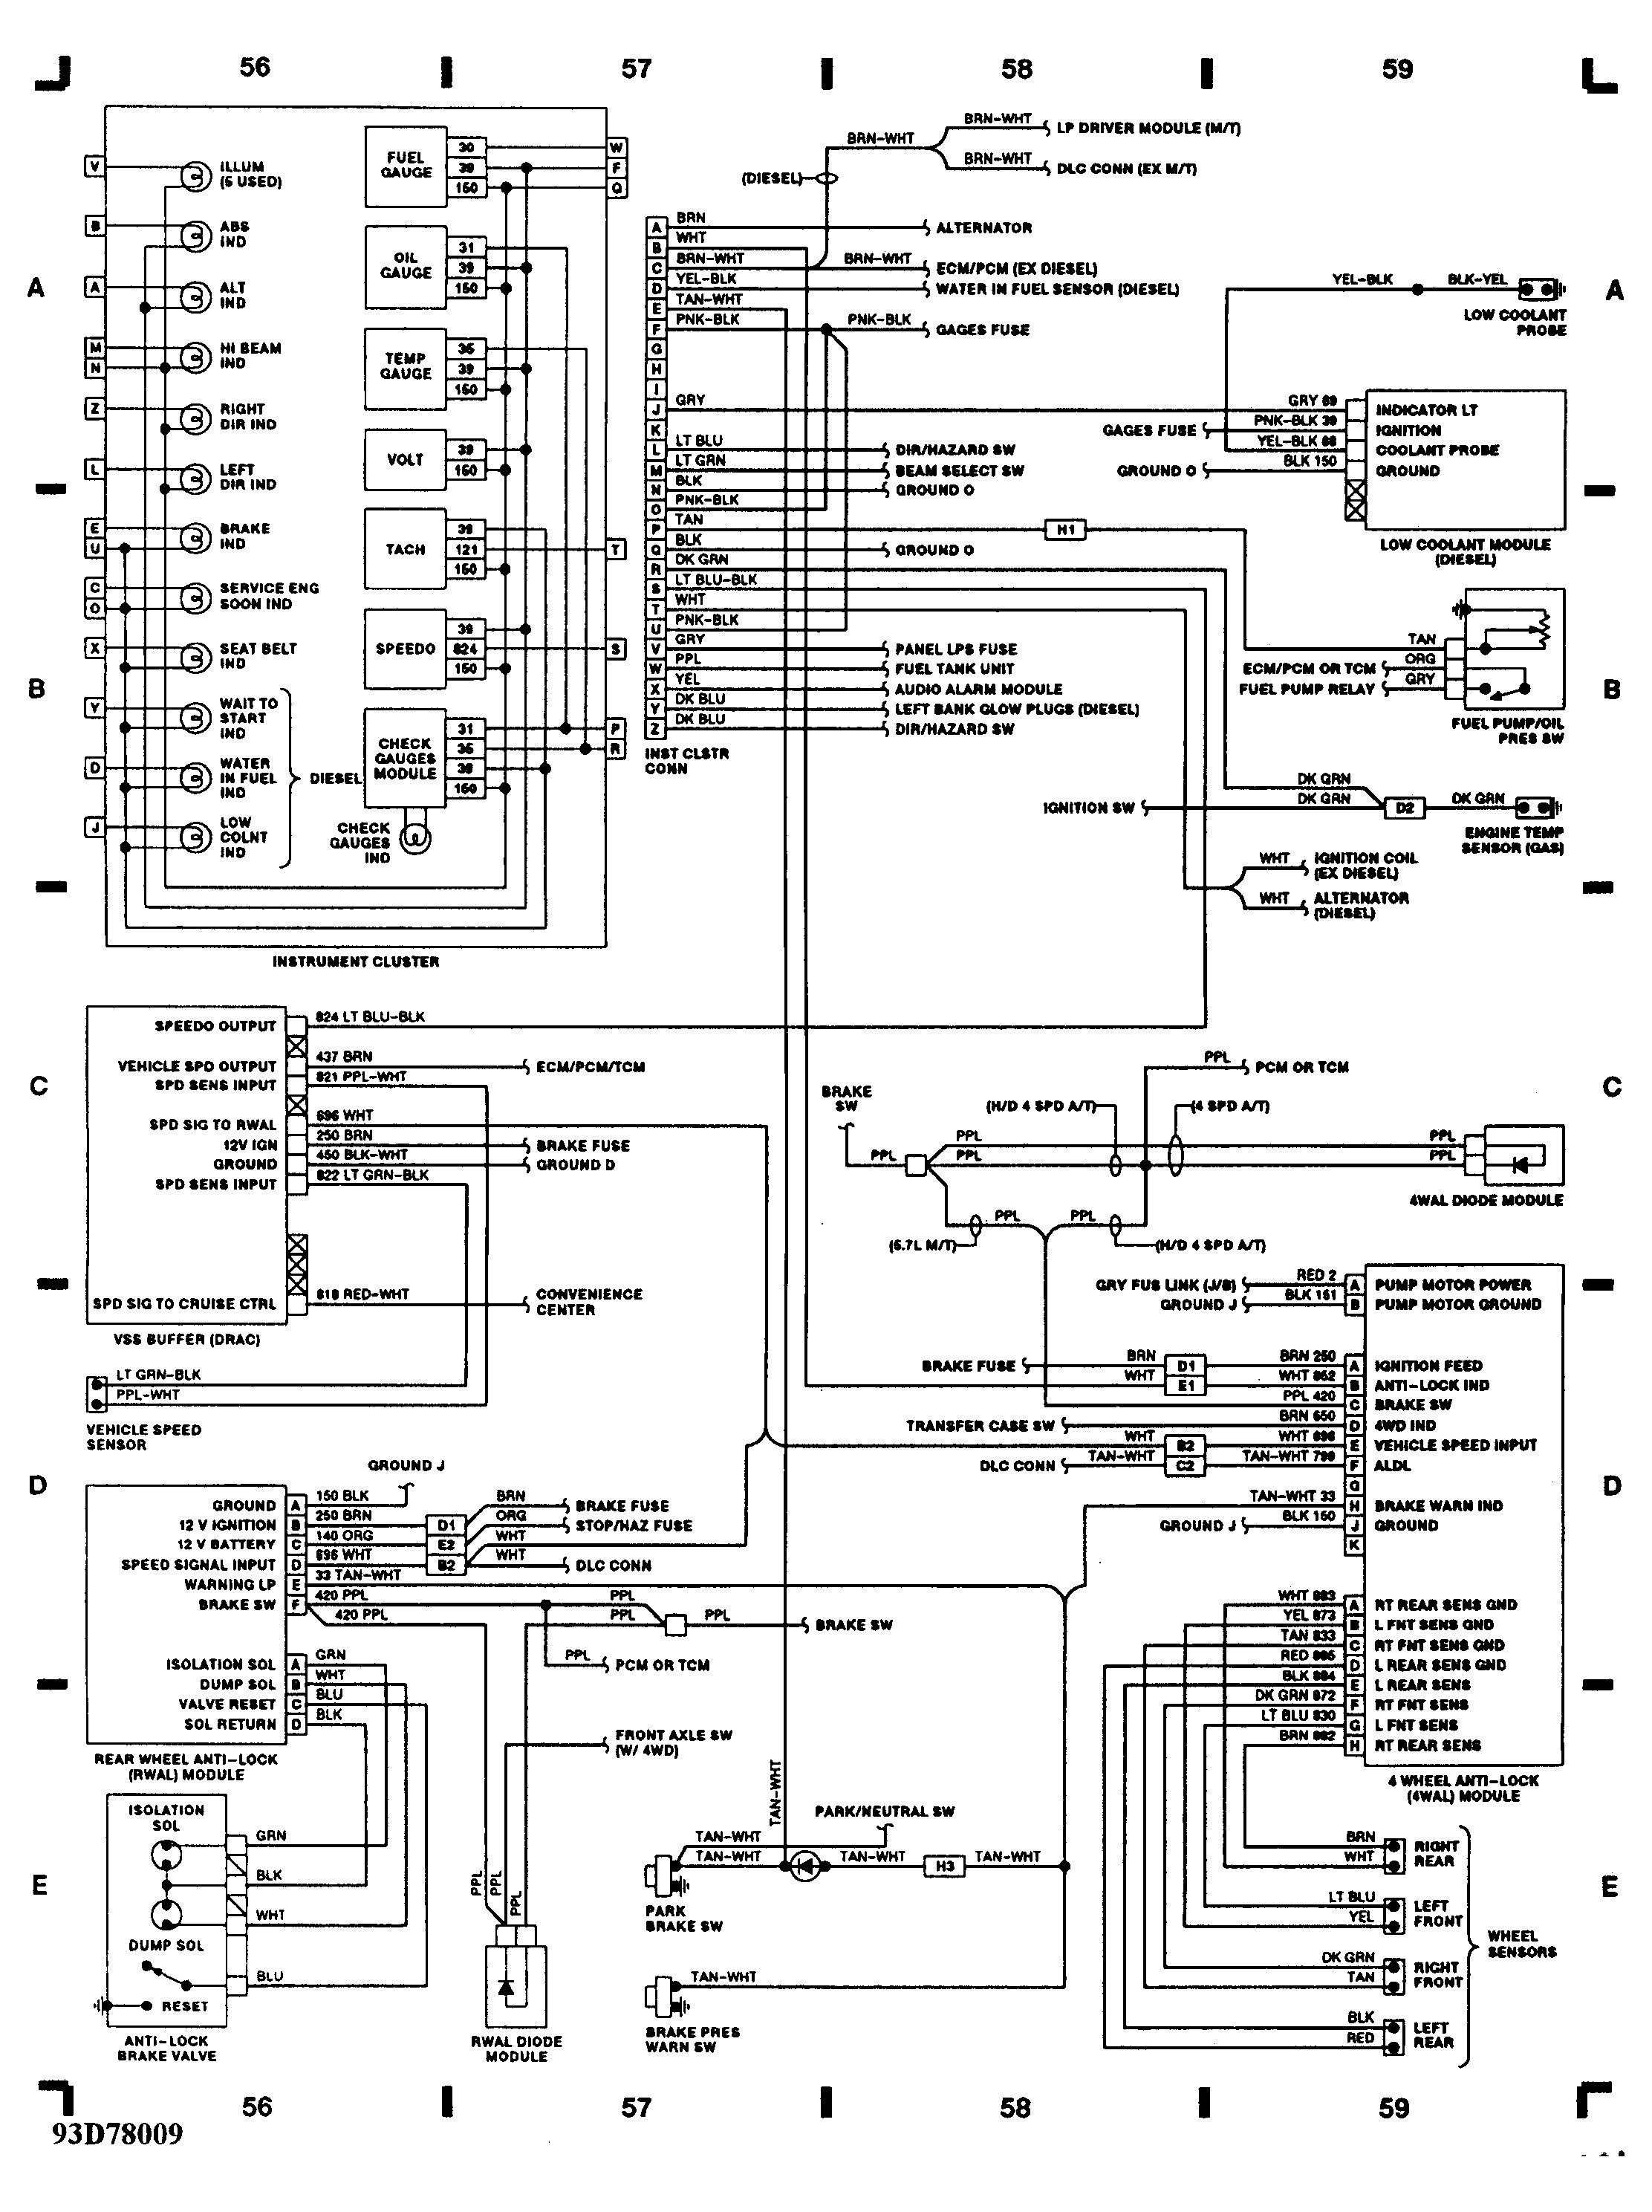 Ford 5 4 L Engine Diagram Gm 5 7 Engine Diagram Library Wiring Diagram • Of Ford 5 4 L Engine Diagram 1999 F150 Engine Wiring Data Wiring Diagrams •